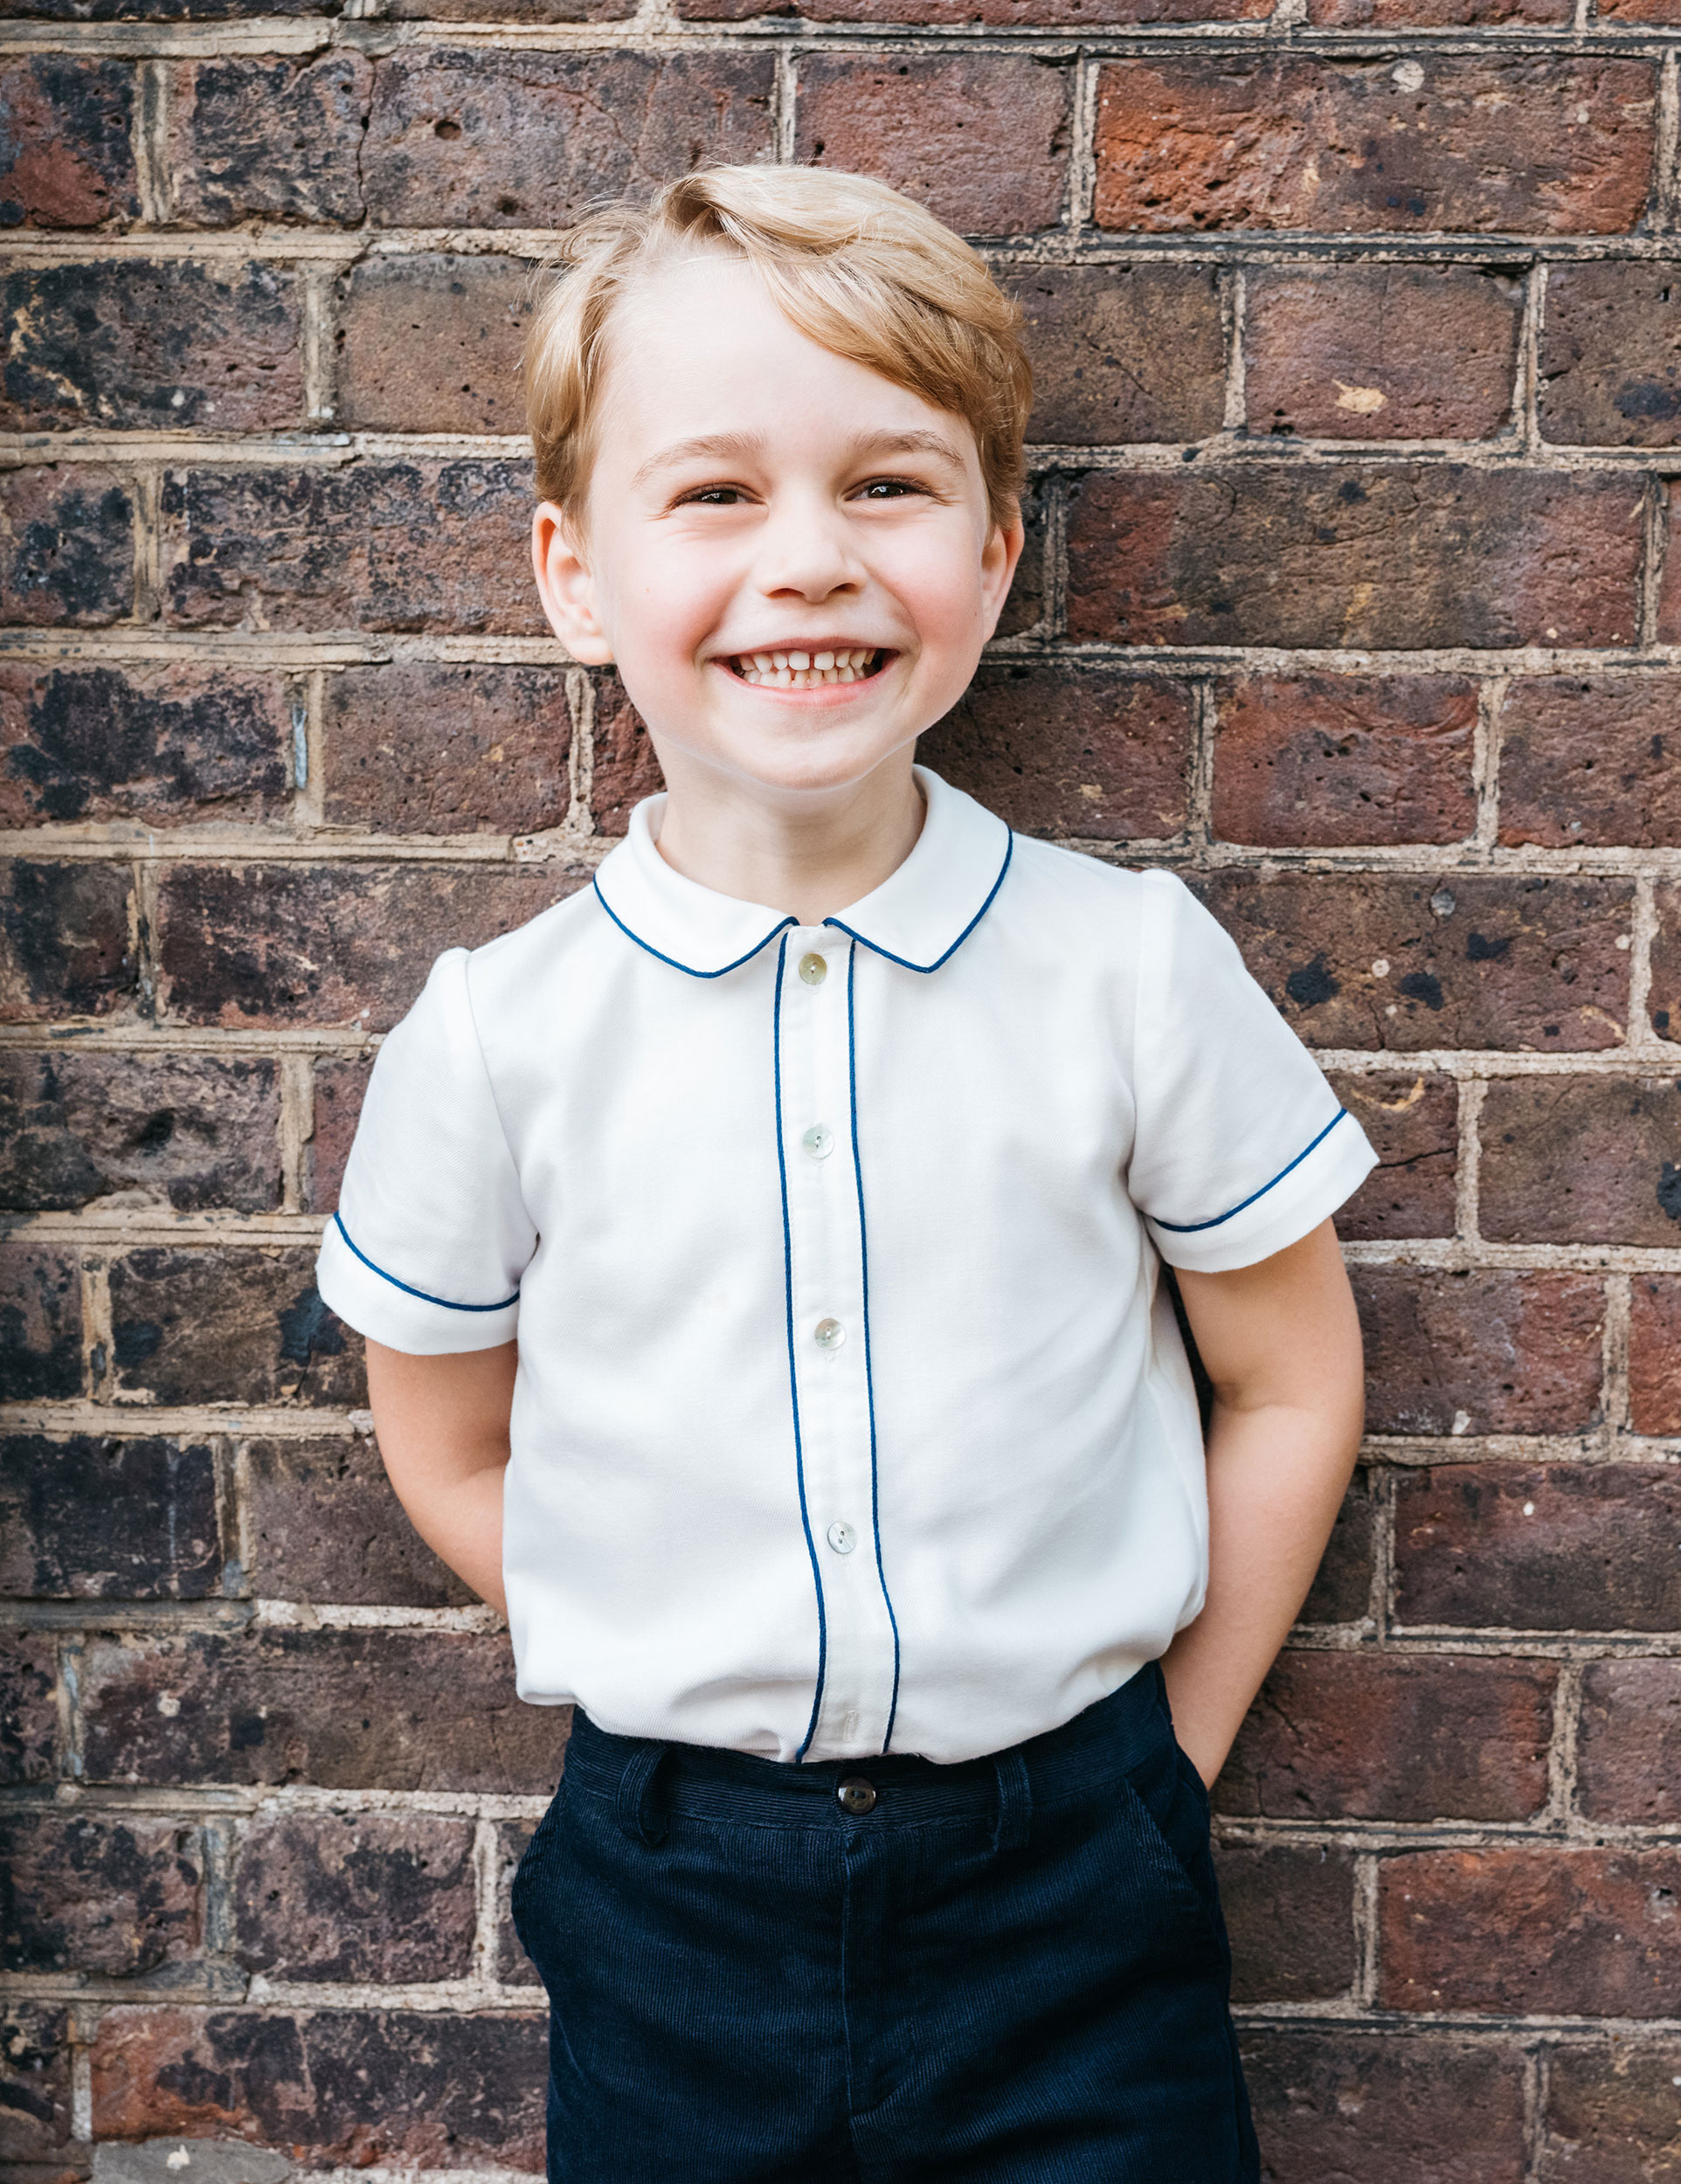 The ocean-loving photographer who took Prince Louis' iconic candid christening photo is also the man behind the lens for the official photographs to mark His Royal Highness's Prince George fifth birthday on July 22nd 2018.